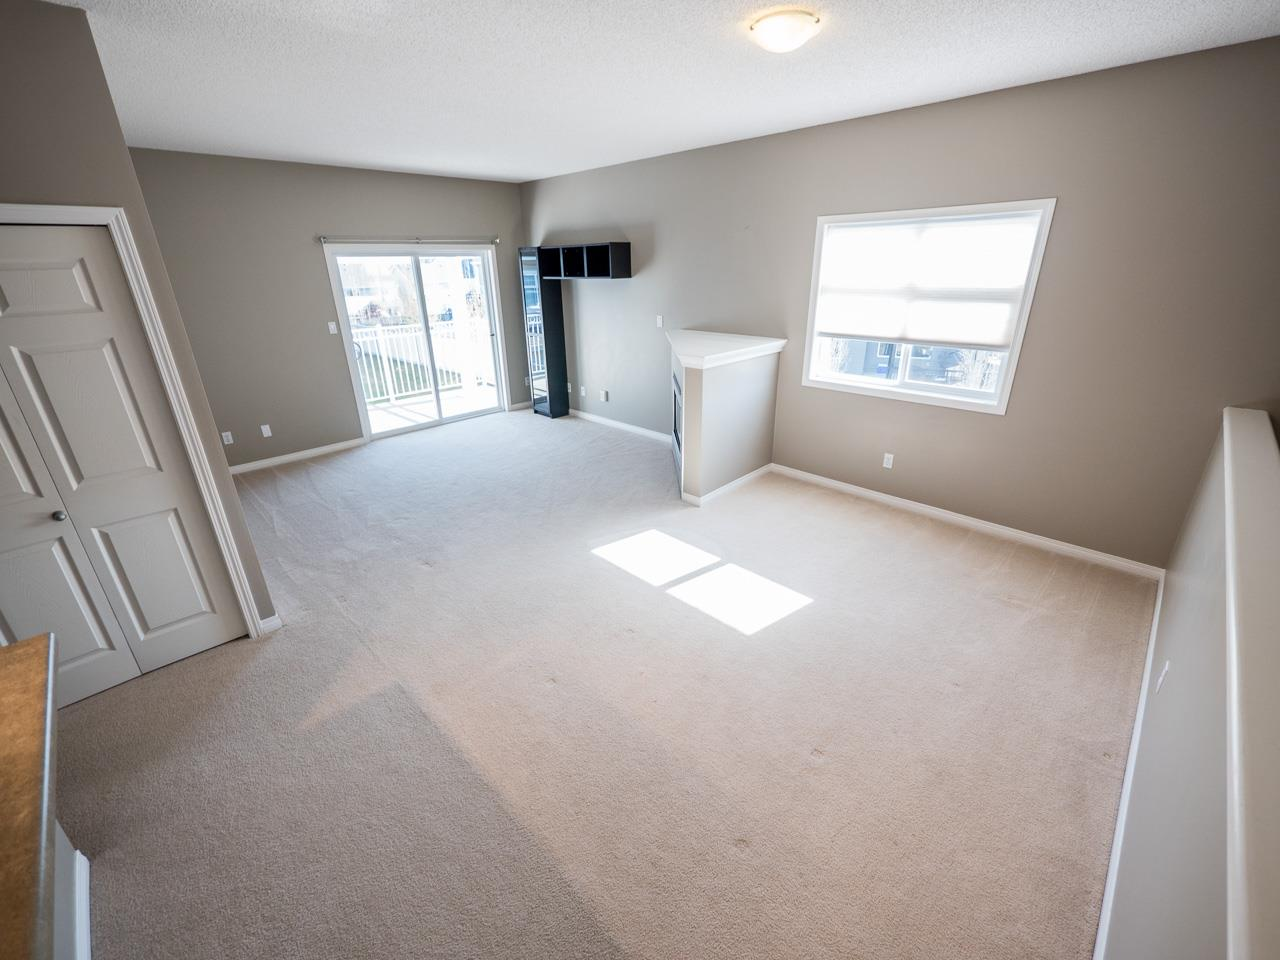 Photo 6: 71 3040 SPENCE Way in Edmonton: Zone 53 Townhouse for sale : MLS(r) # E4063695